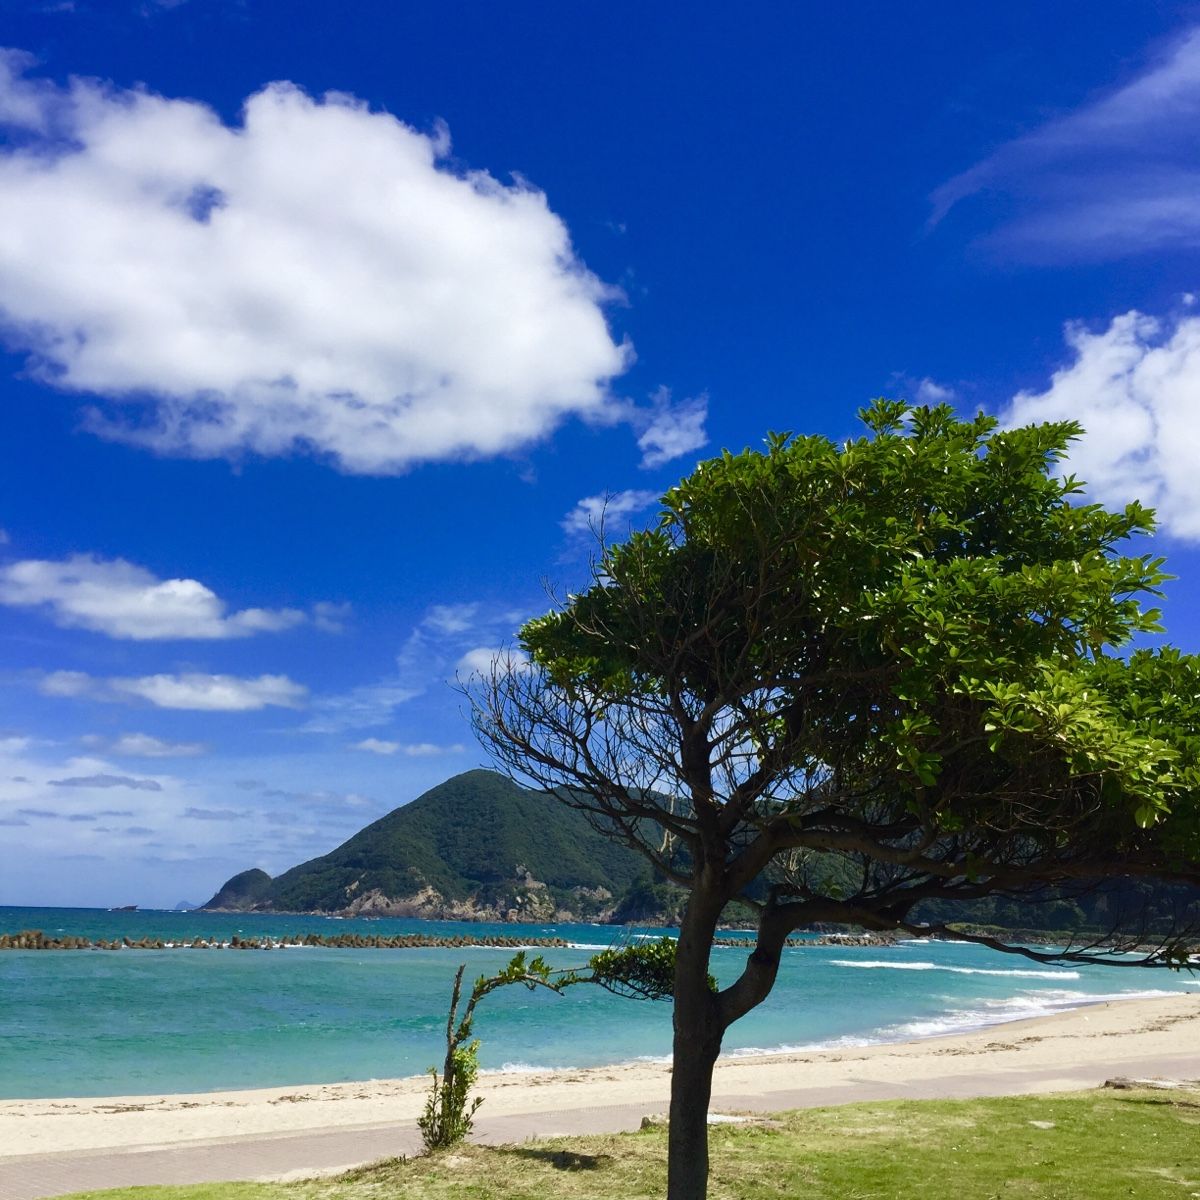 Takeno sandy beach and tree